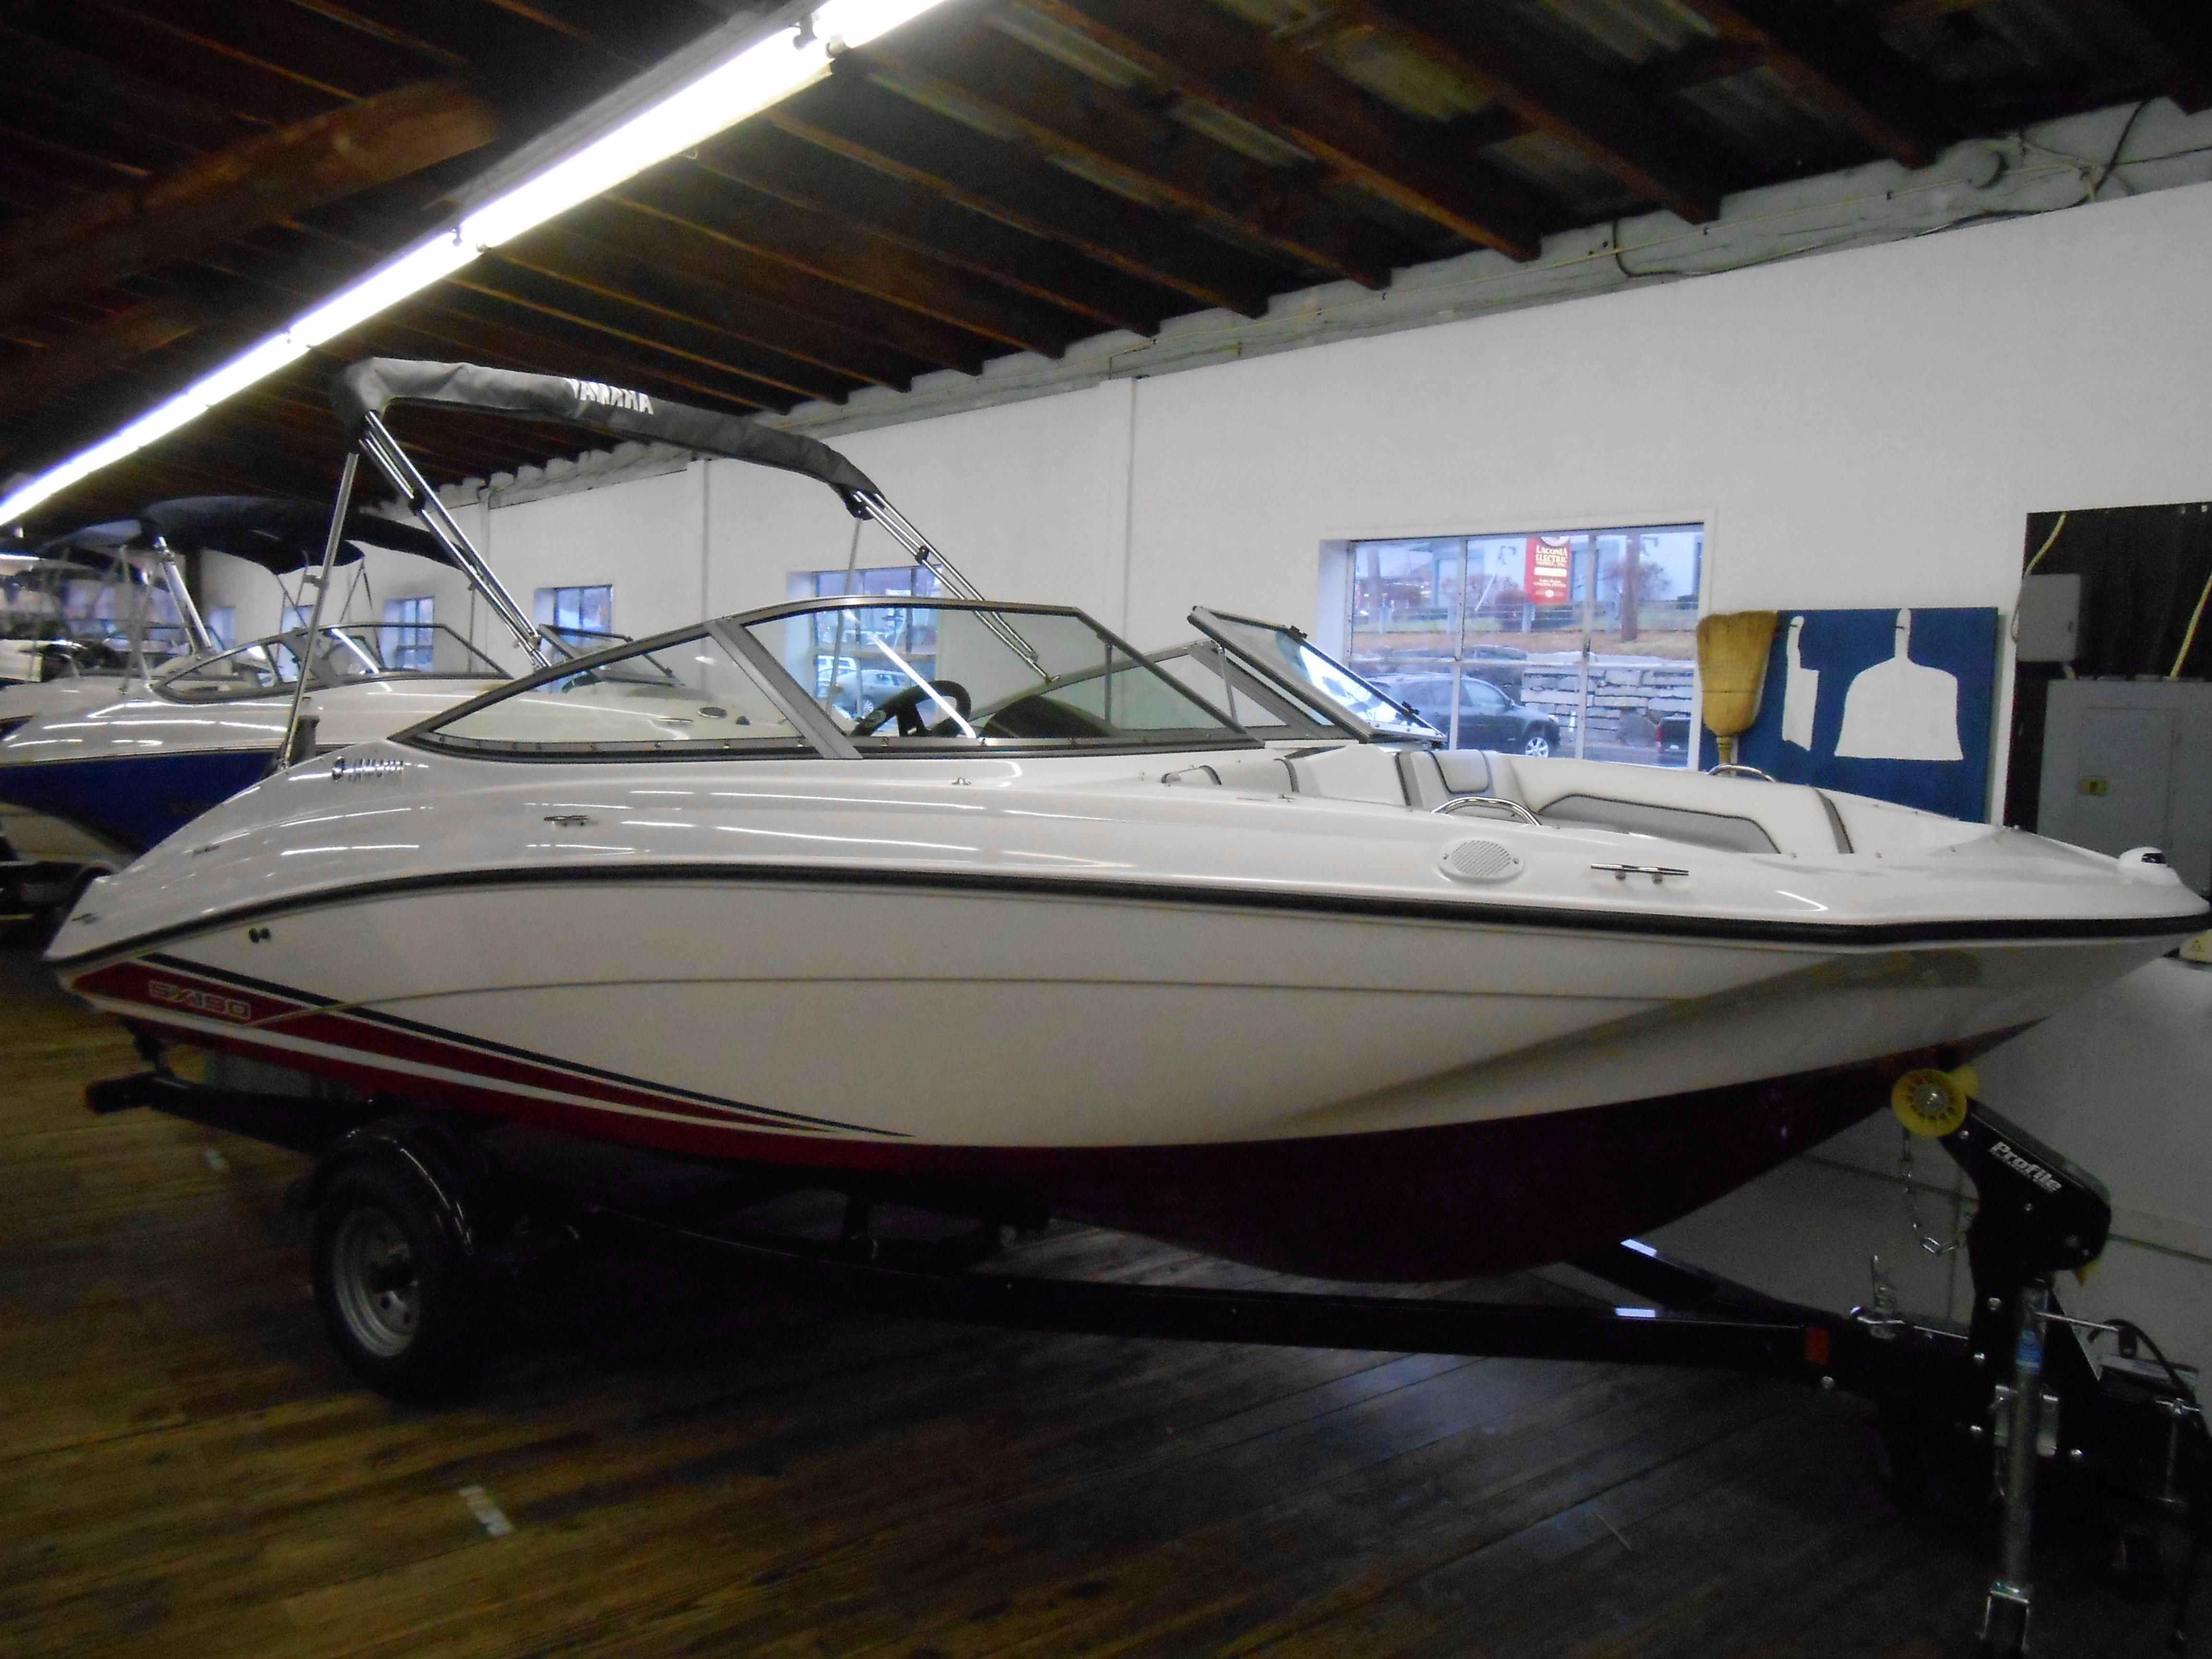 2018 yamaha sx190 power boat for sale for Yamaha 24 boat